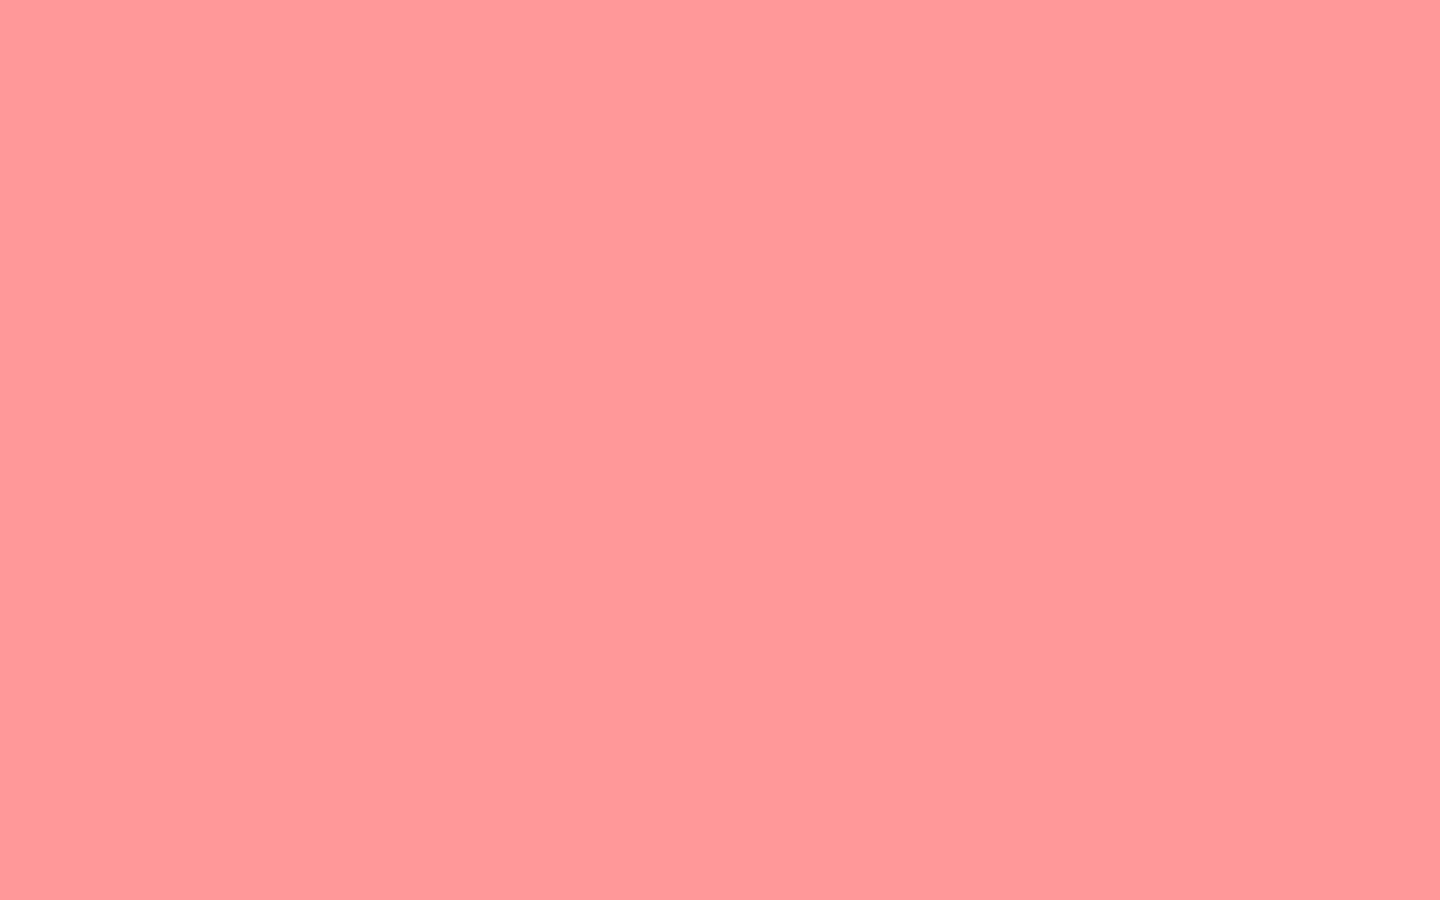 Salmon Pink Background | www.imgkid.com - The Image Kid ...